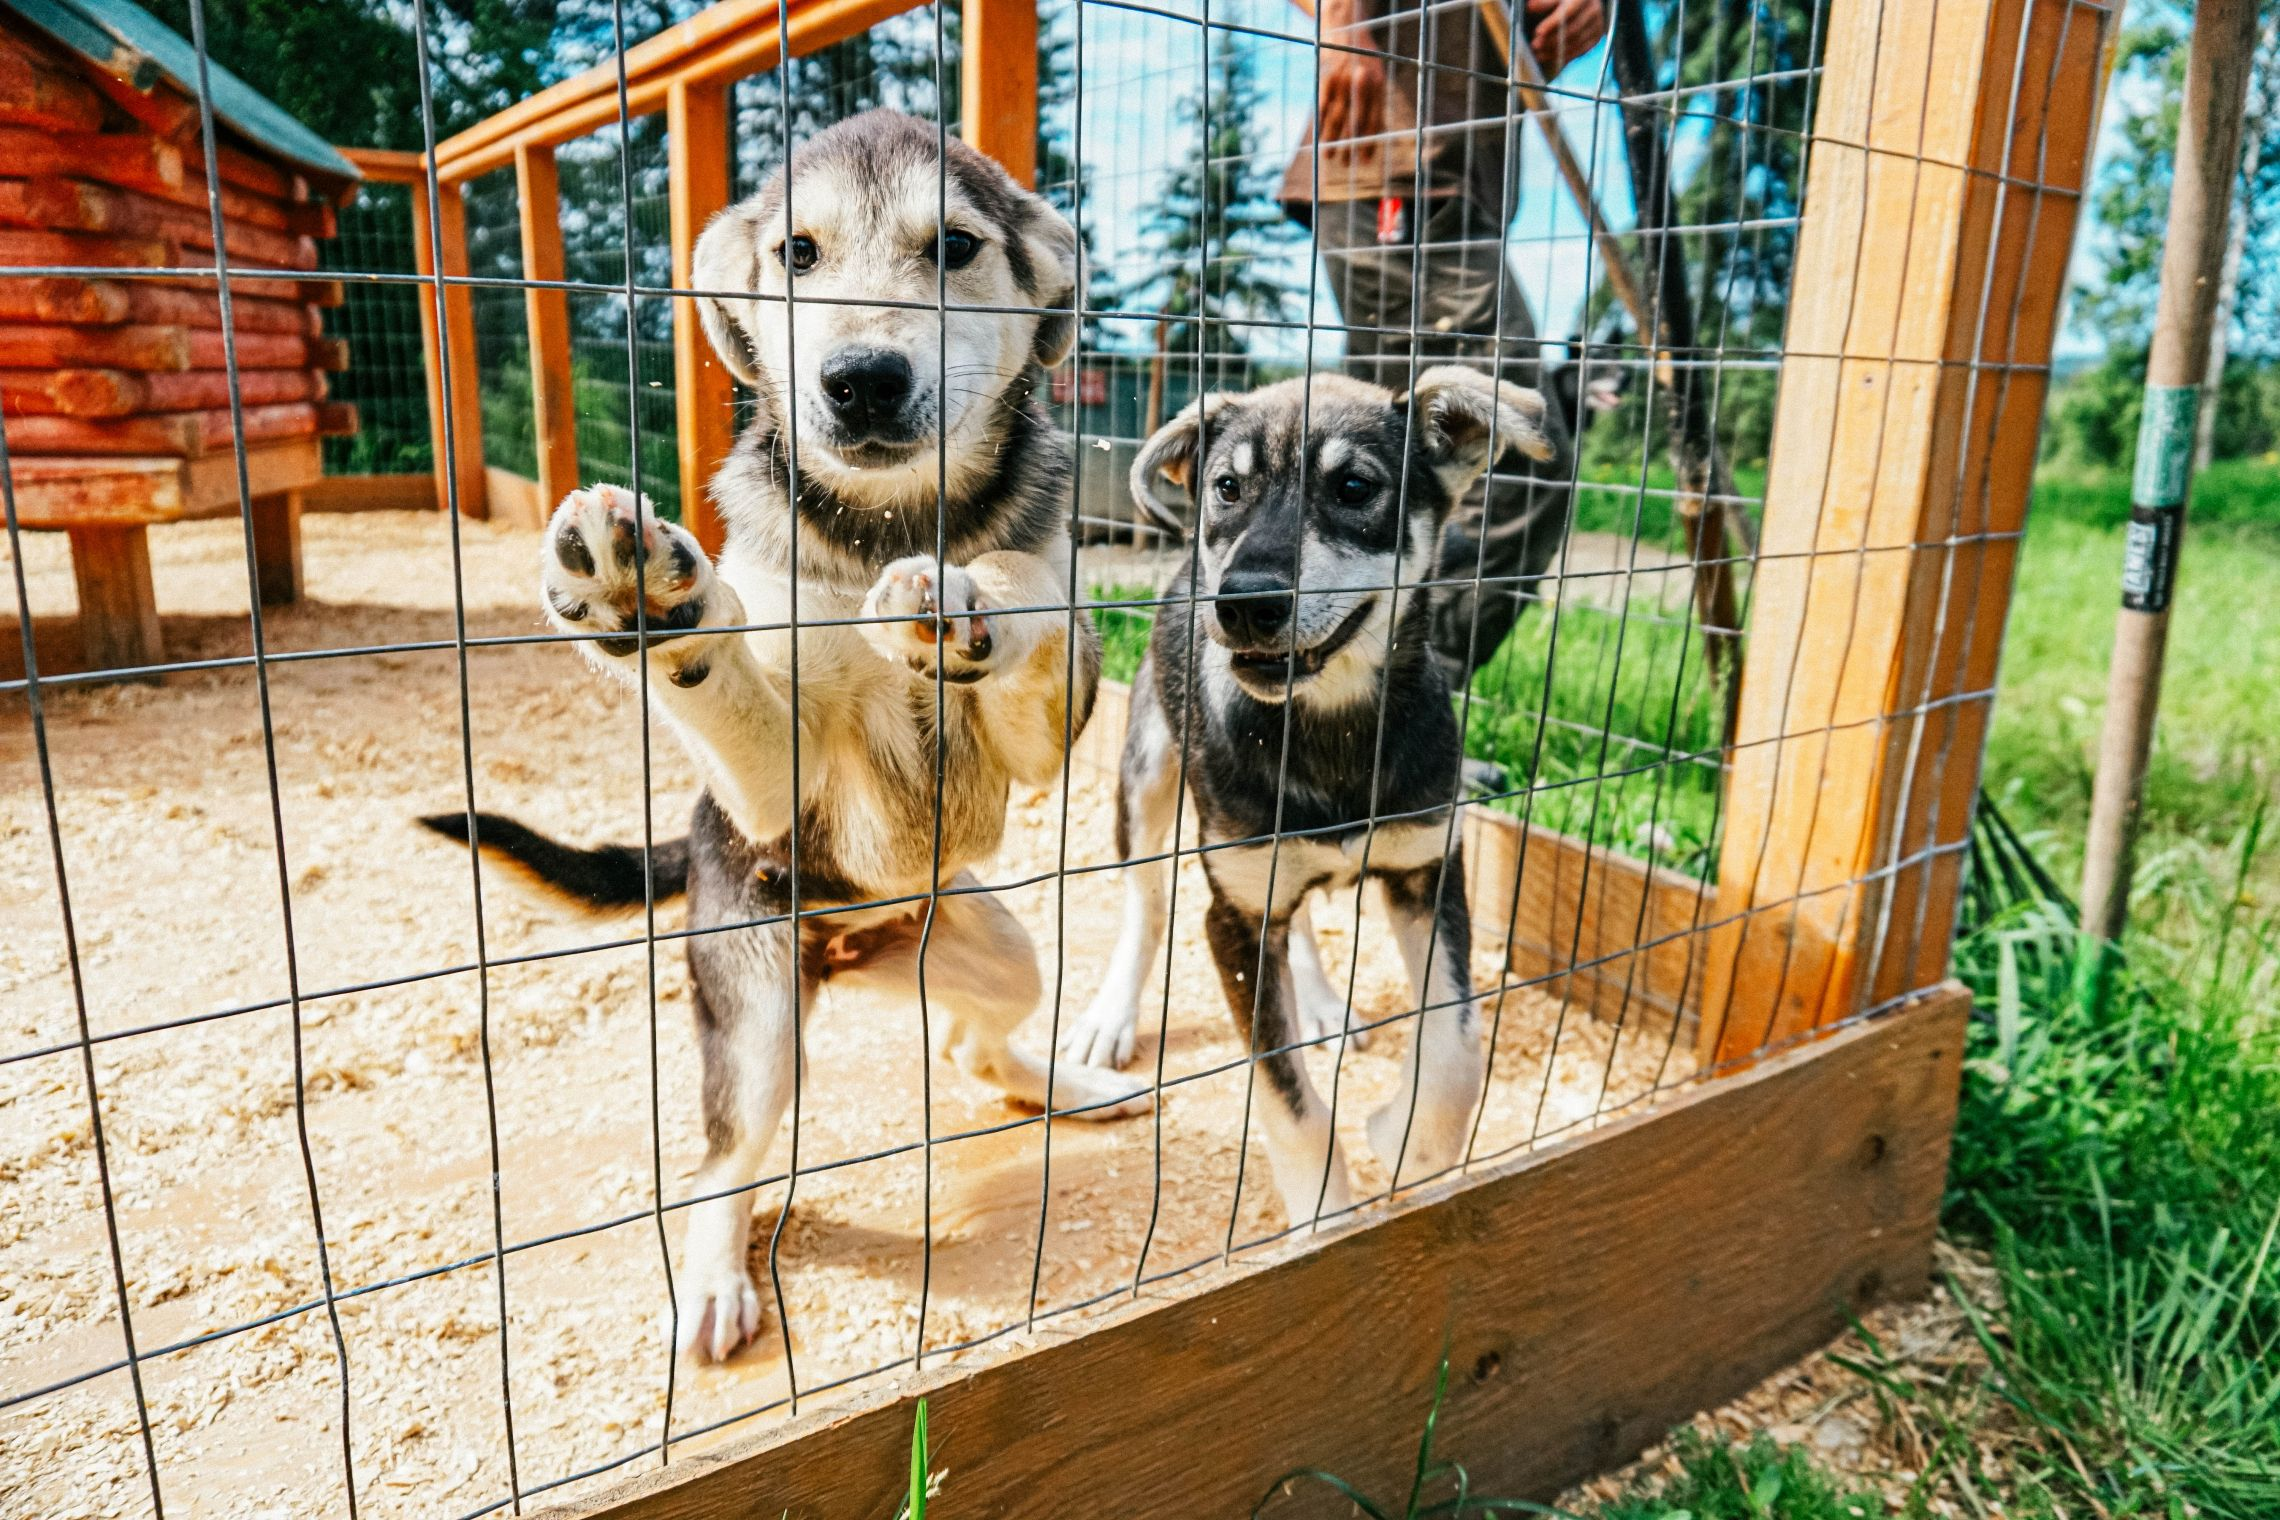 Visit Paws For Adventure and feel the energy and excitement of over 60 lovable kennel dogs!